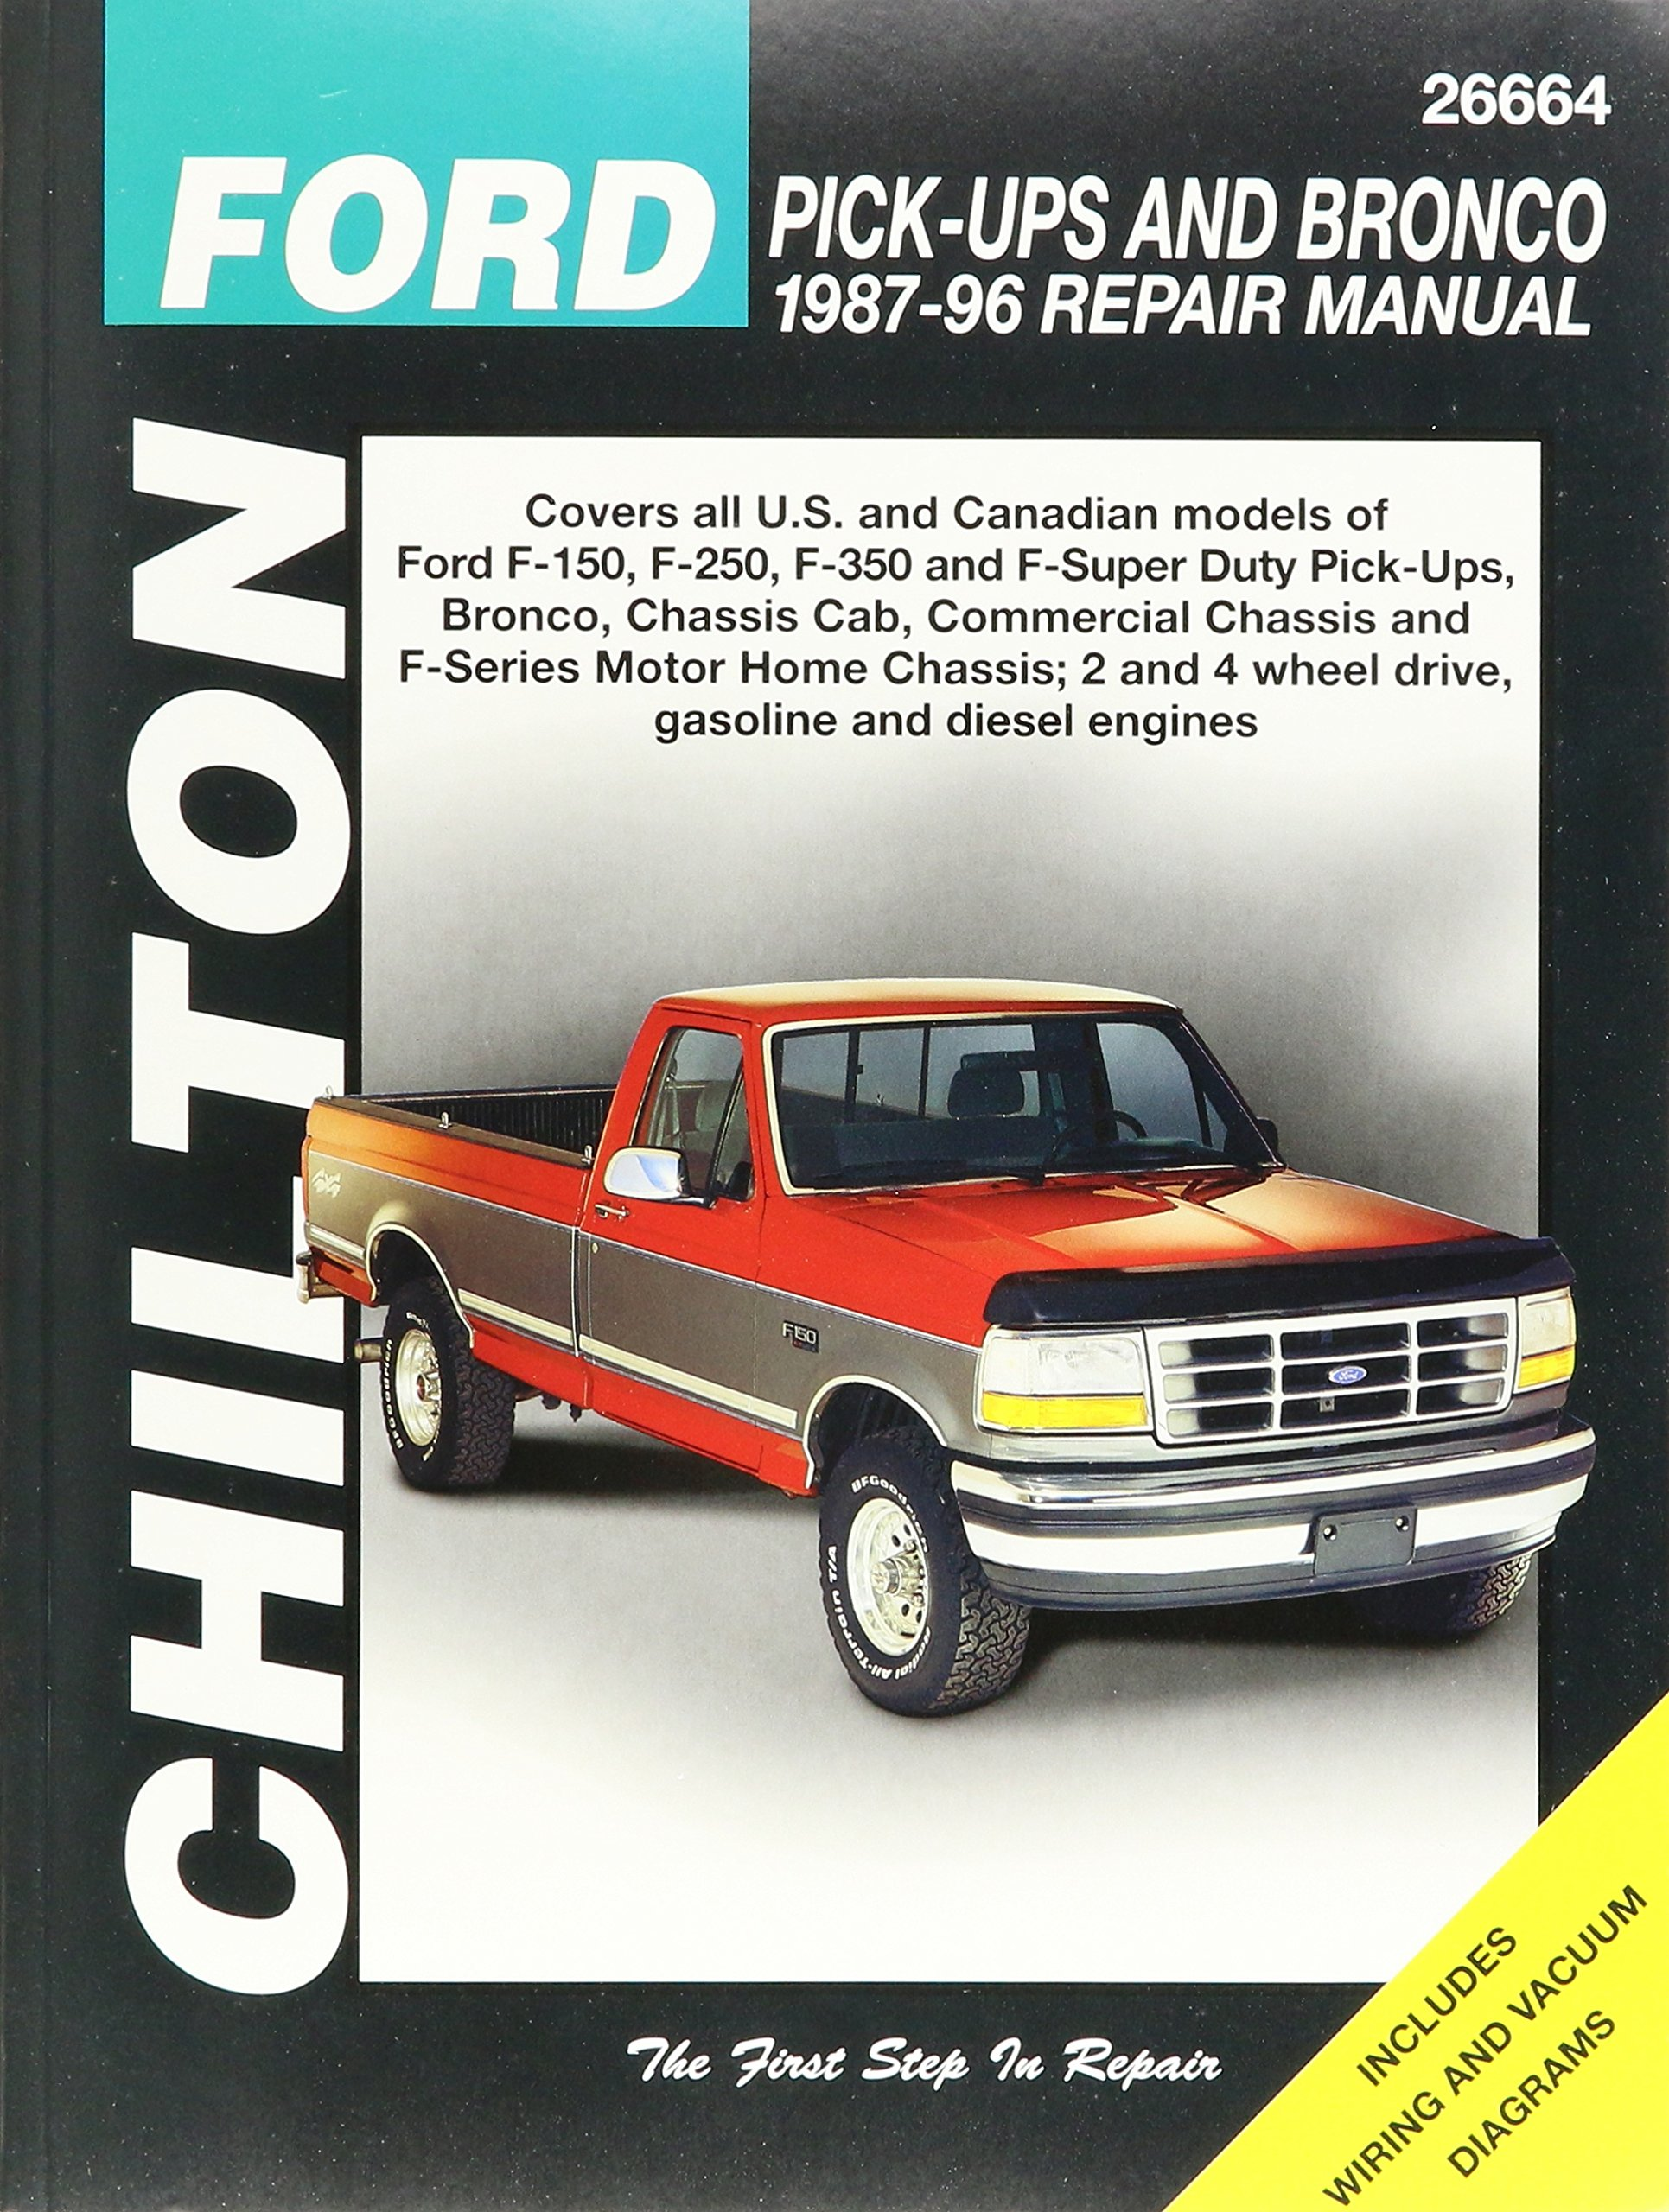 Chilton Total Car Care Ford Pick-Ups & Bronco, 87-96 (26664): Manufacturer:  0035650813687: Amazon.com: Books